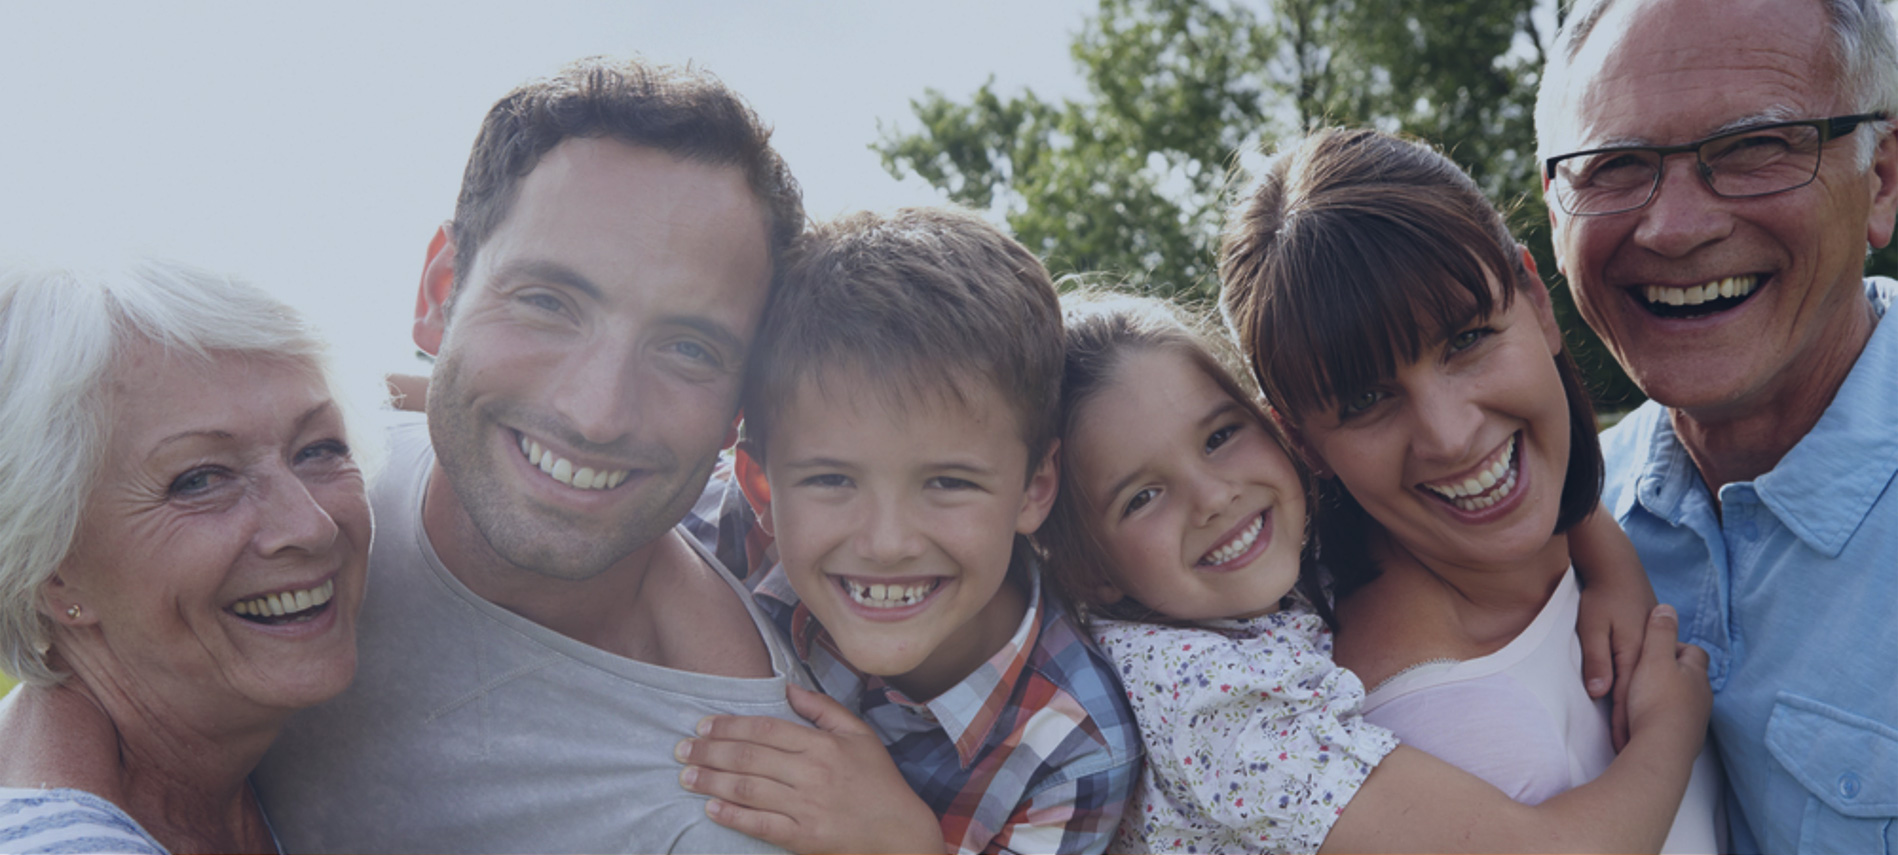 exceptional dental care for the whole family